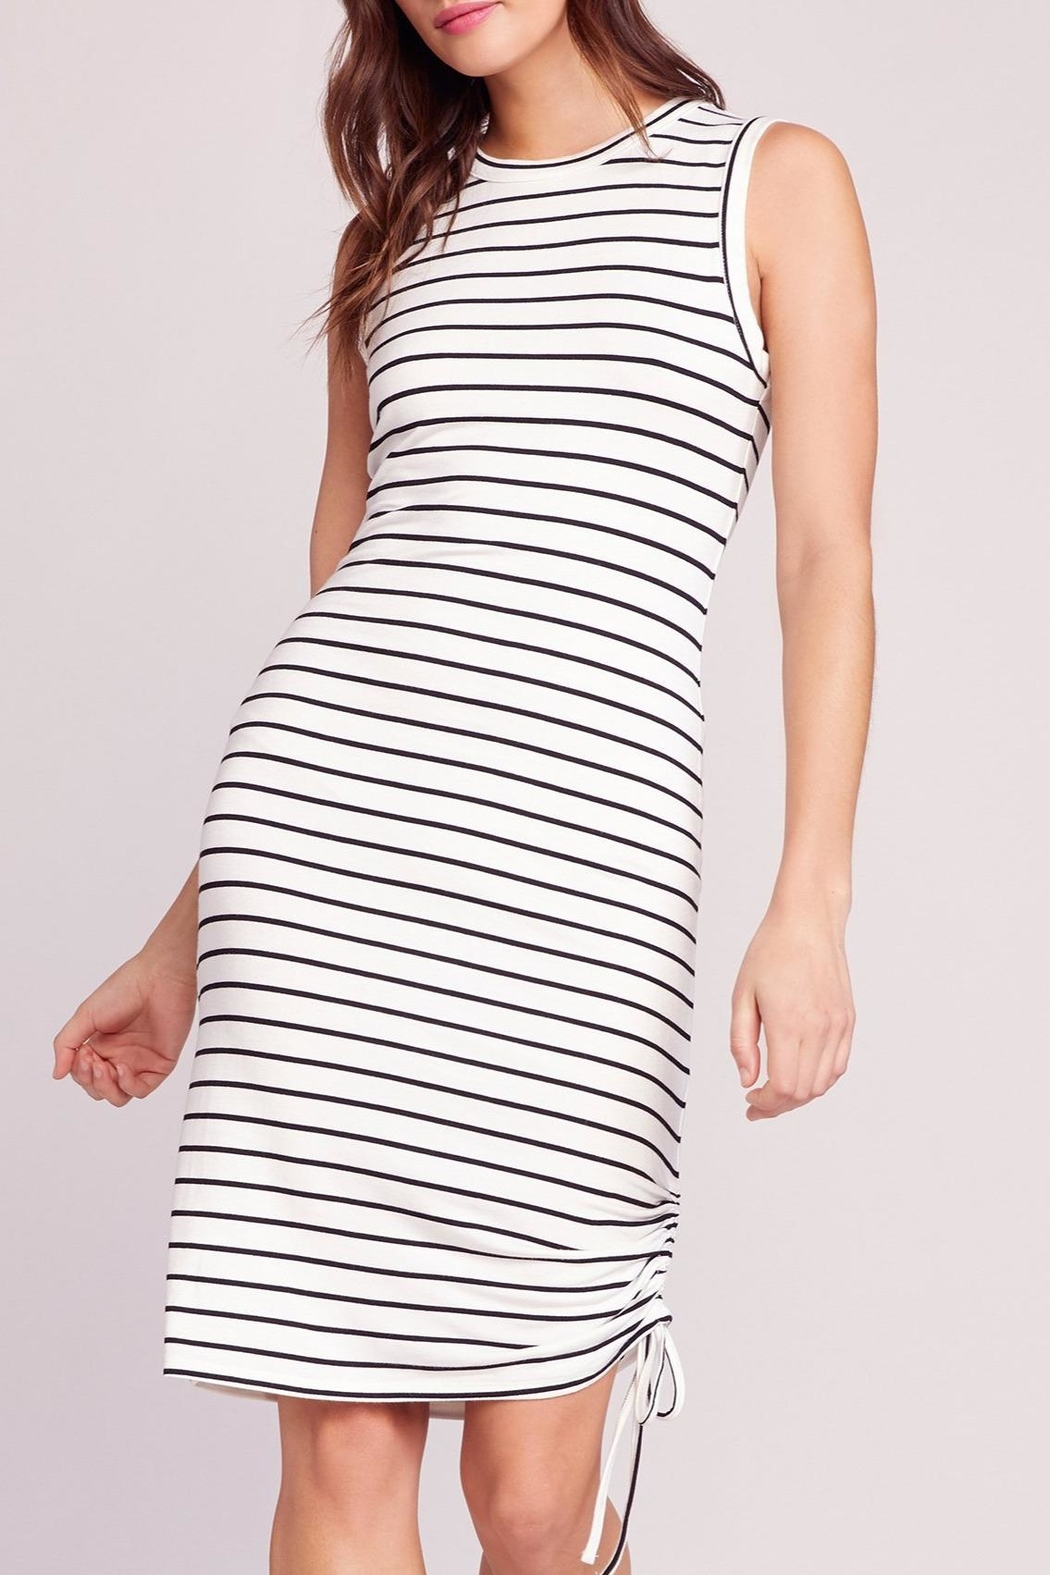 BB Dakota What's-The-Ruche Stripe Dress - Side Cropped Image